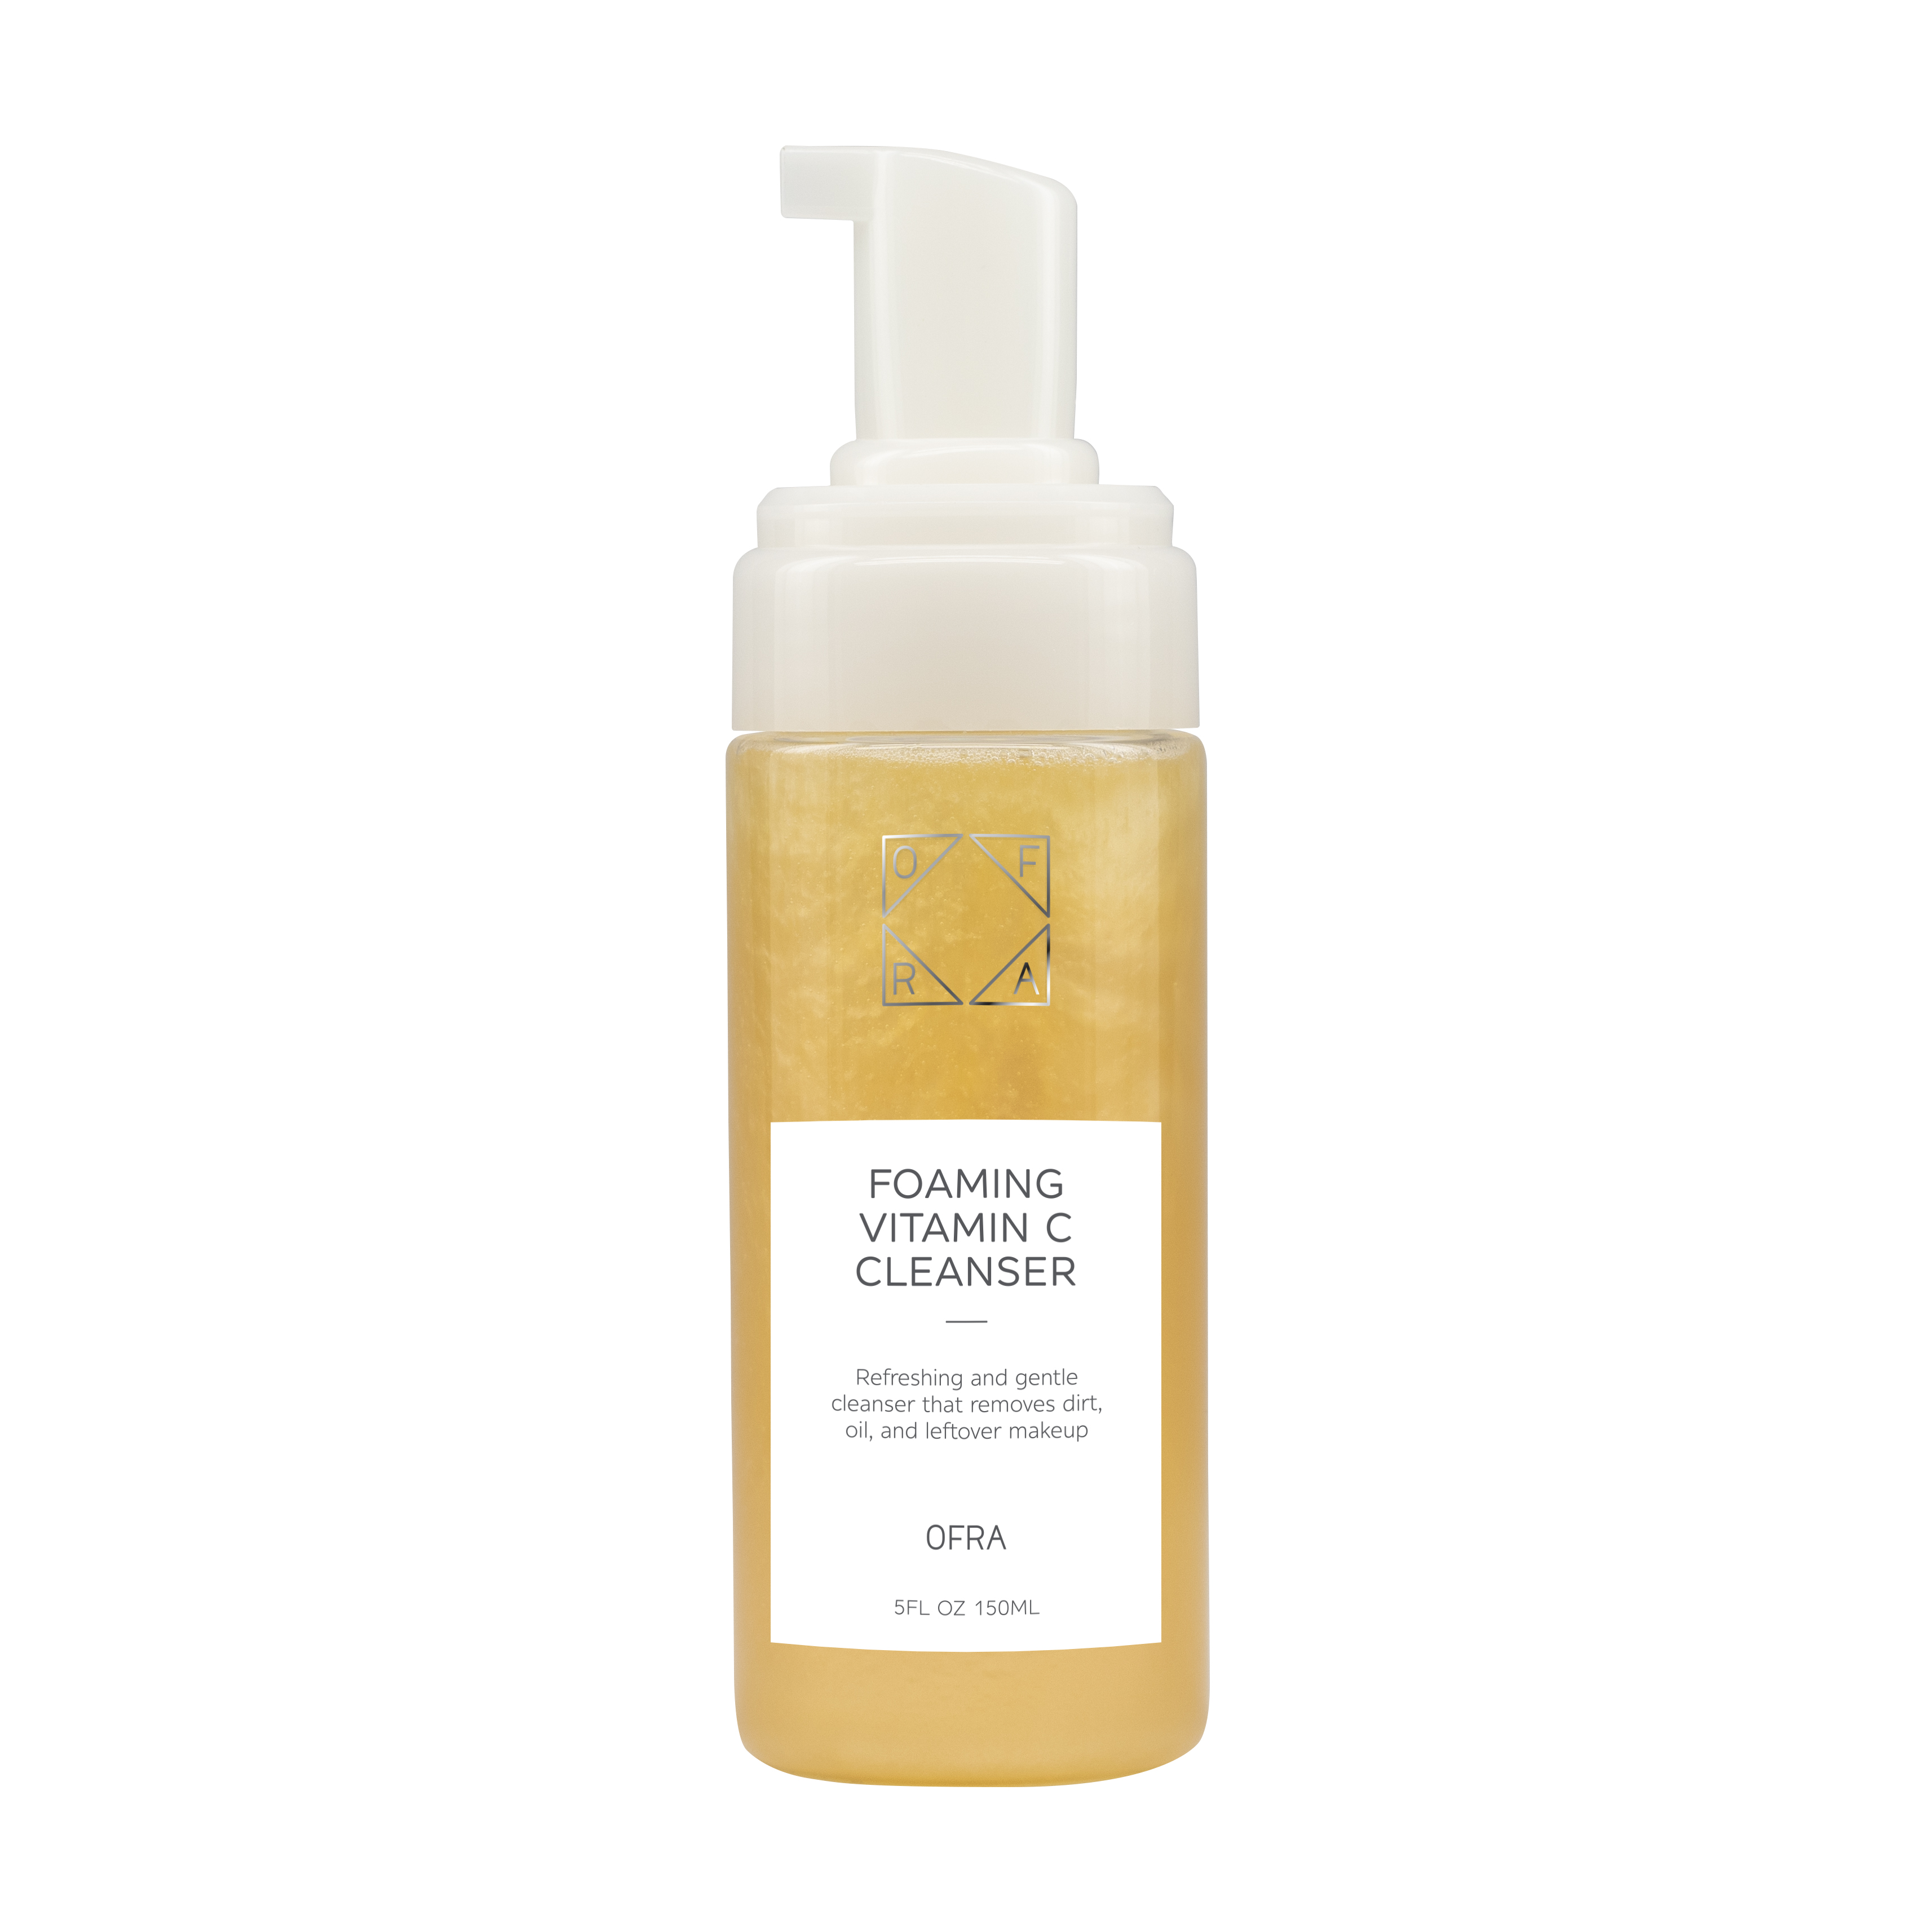 ofra-foaming-vitamin-c-cleanser-south-africa